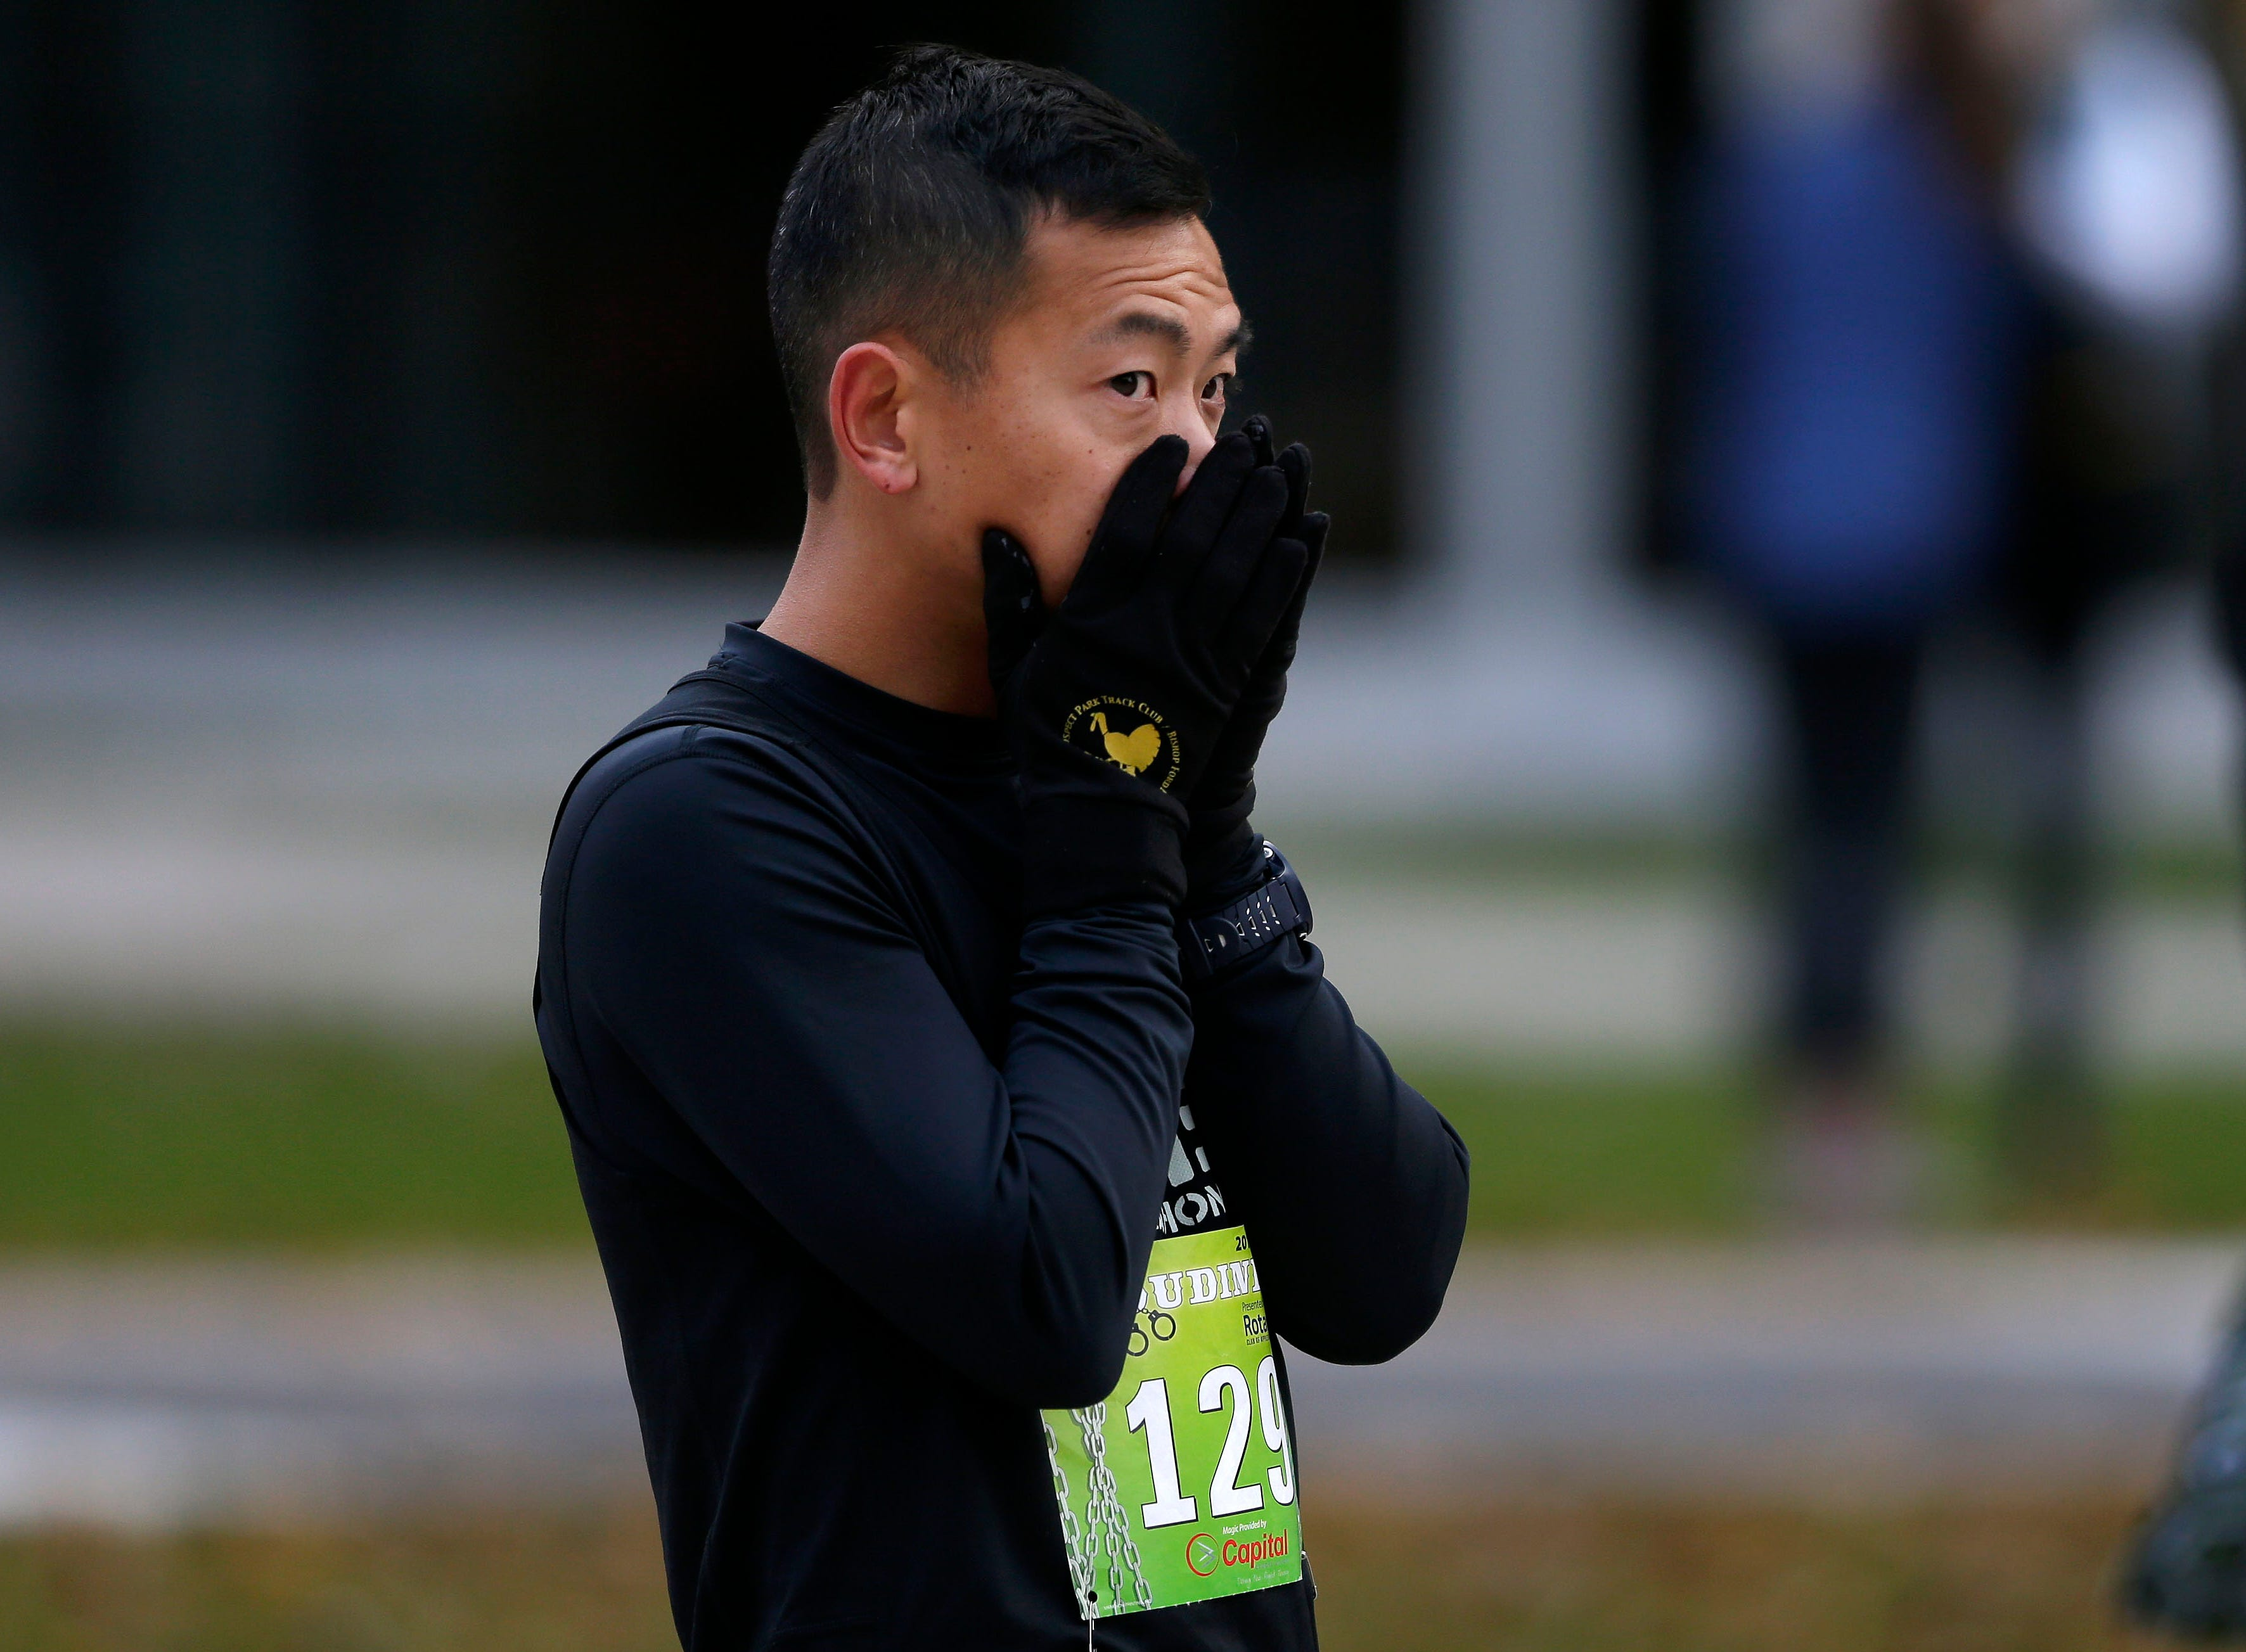 Philip Chiu stays warm before the start of the 4th annual Appleton Houdini 10K Saturday, November 3, 2018, in Appleton, Wis.Ron Page/USA TODAY NETWORK-Wisconsin